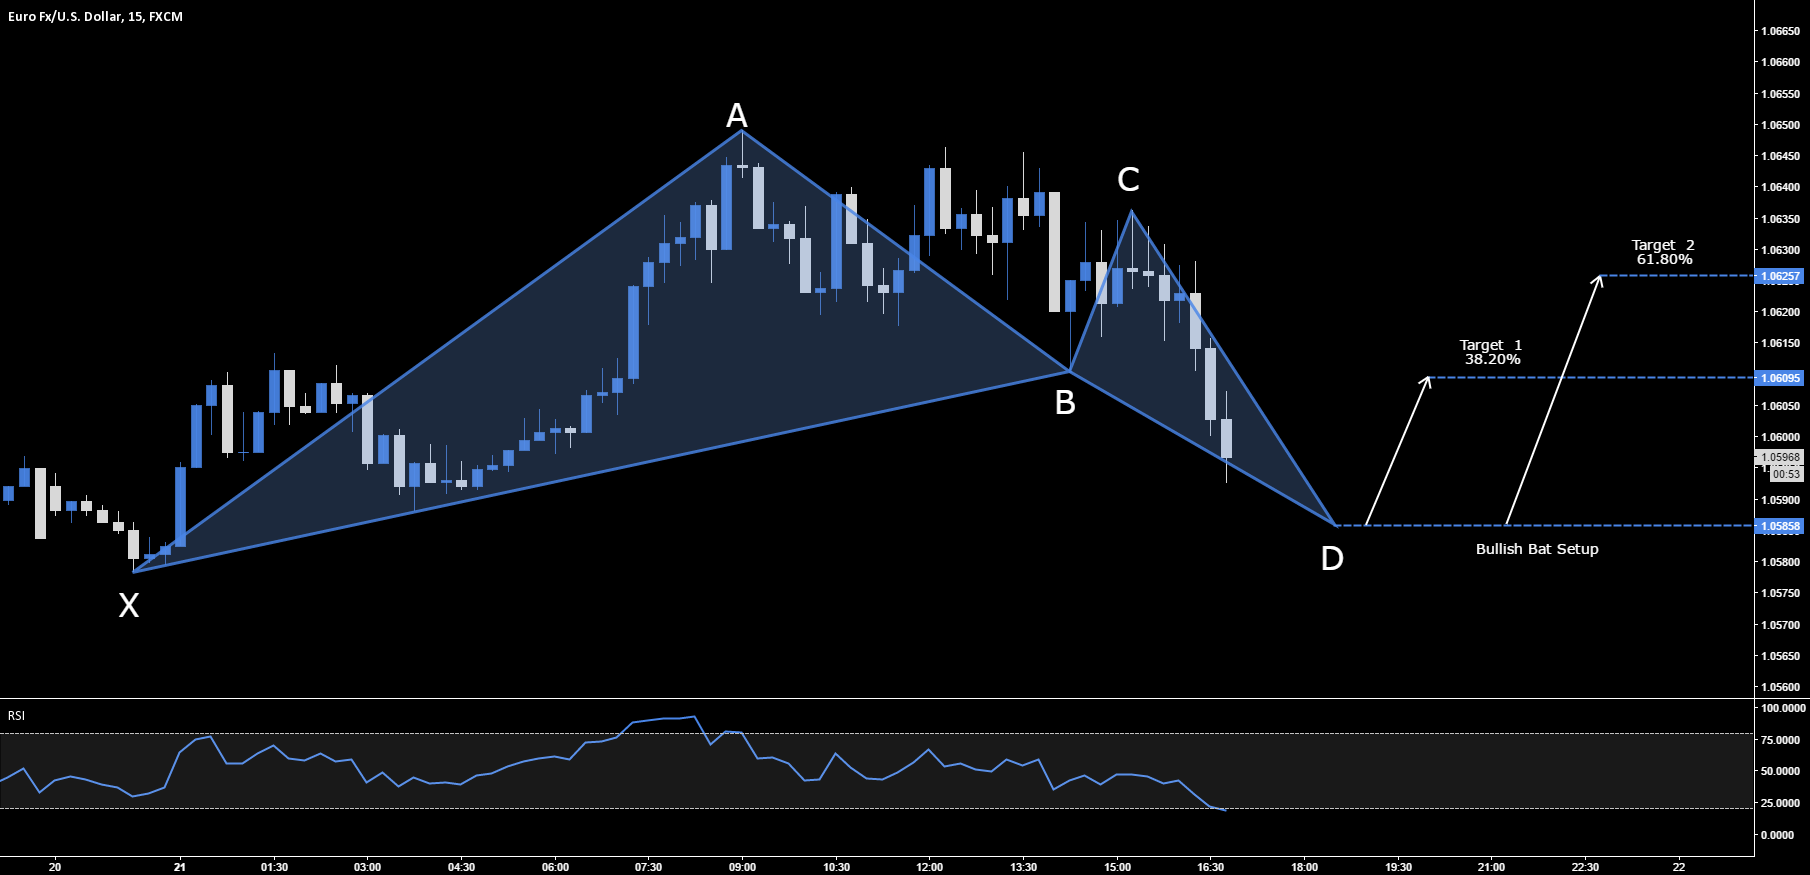 EUR.USD - BULLISH BAT SETUP - 1.0585